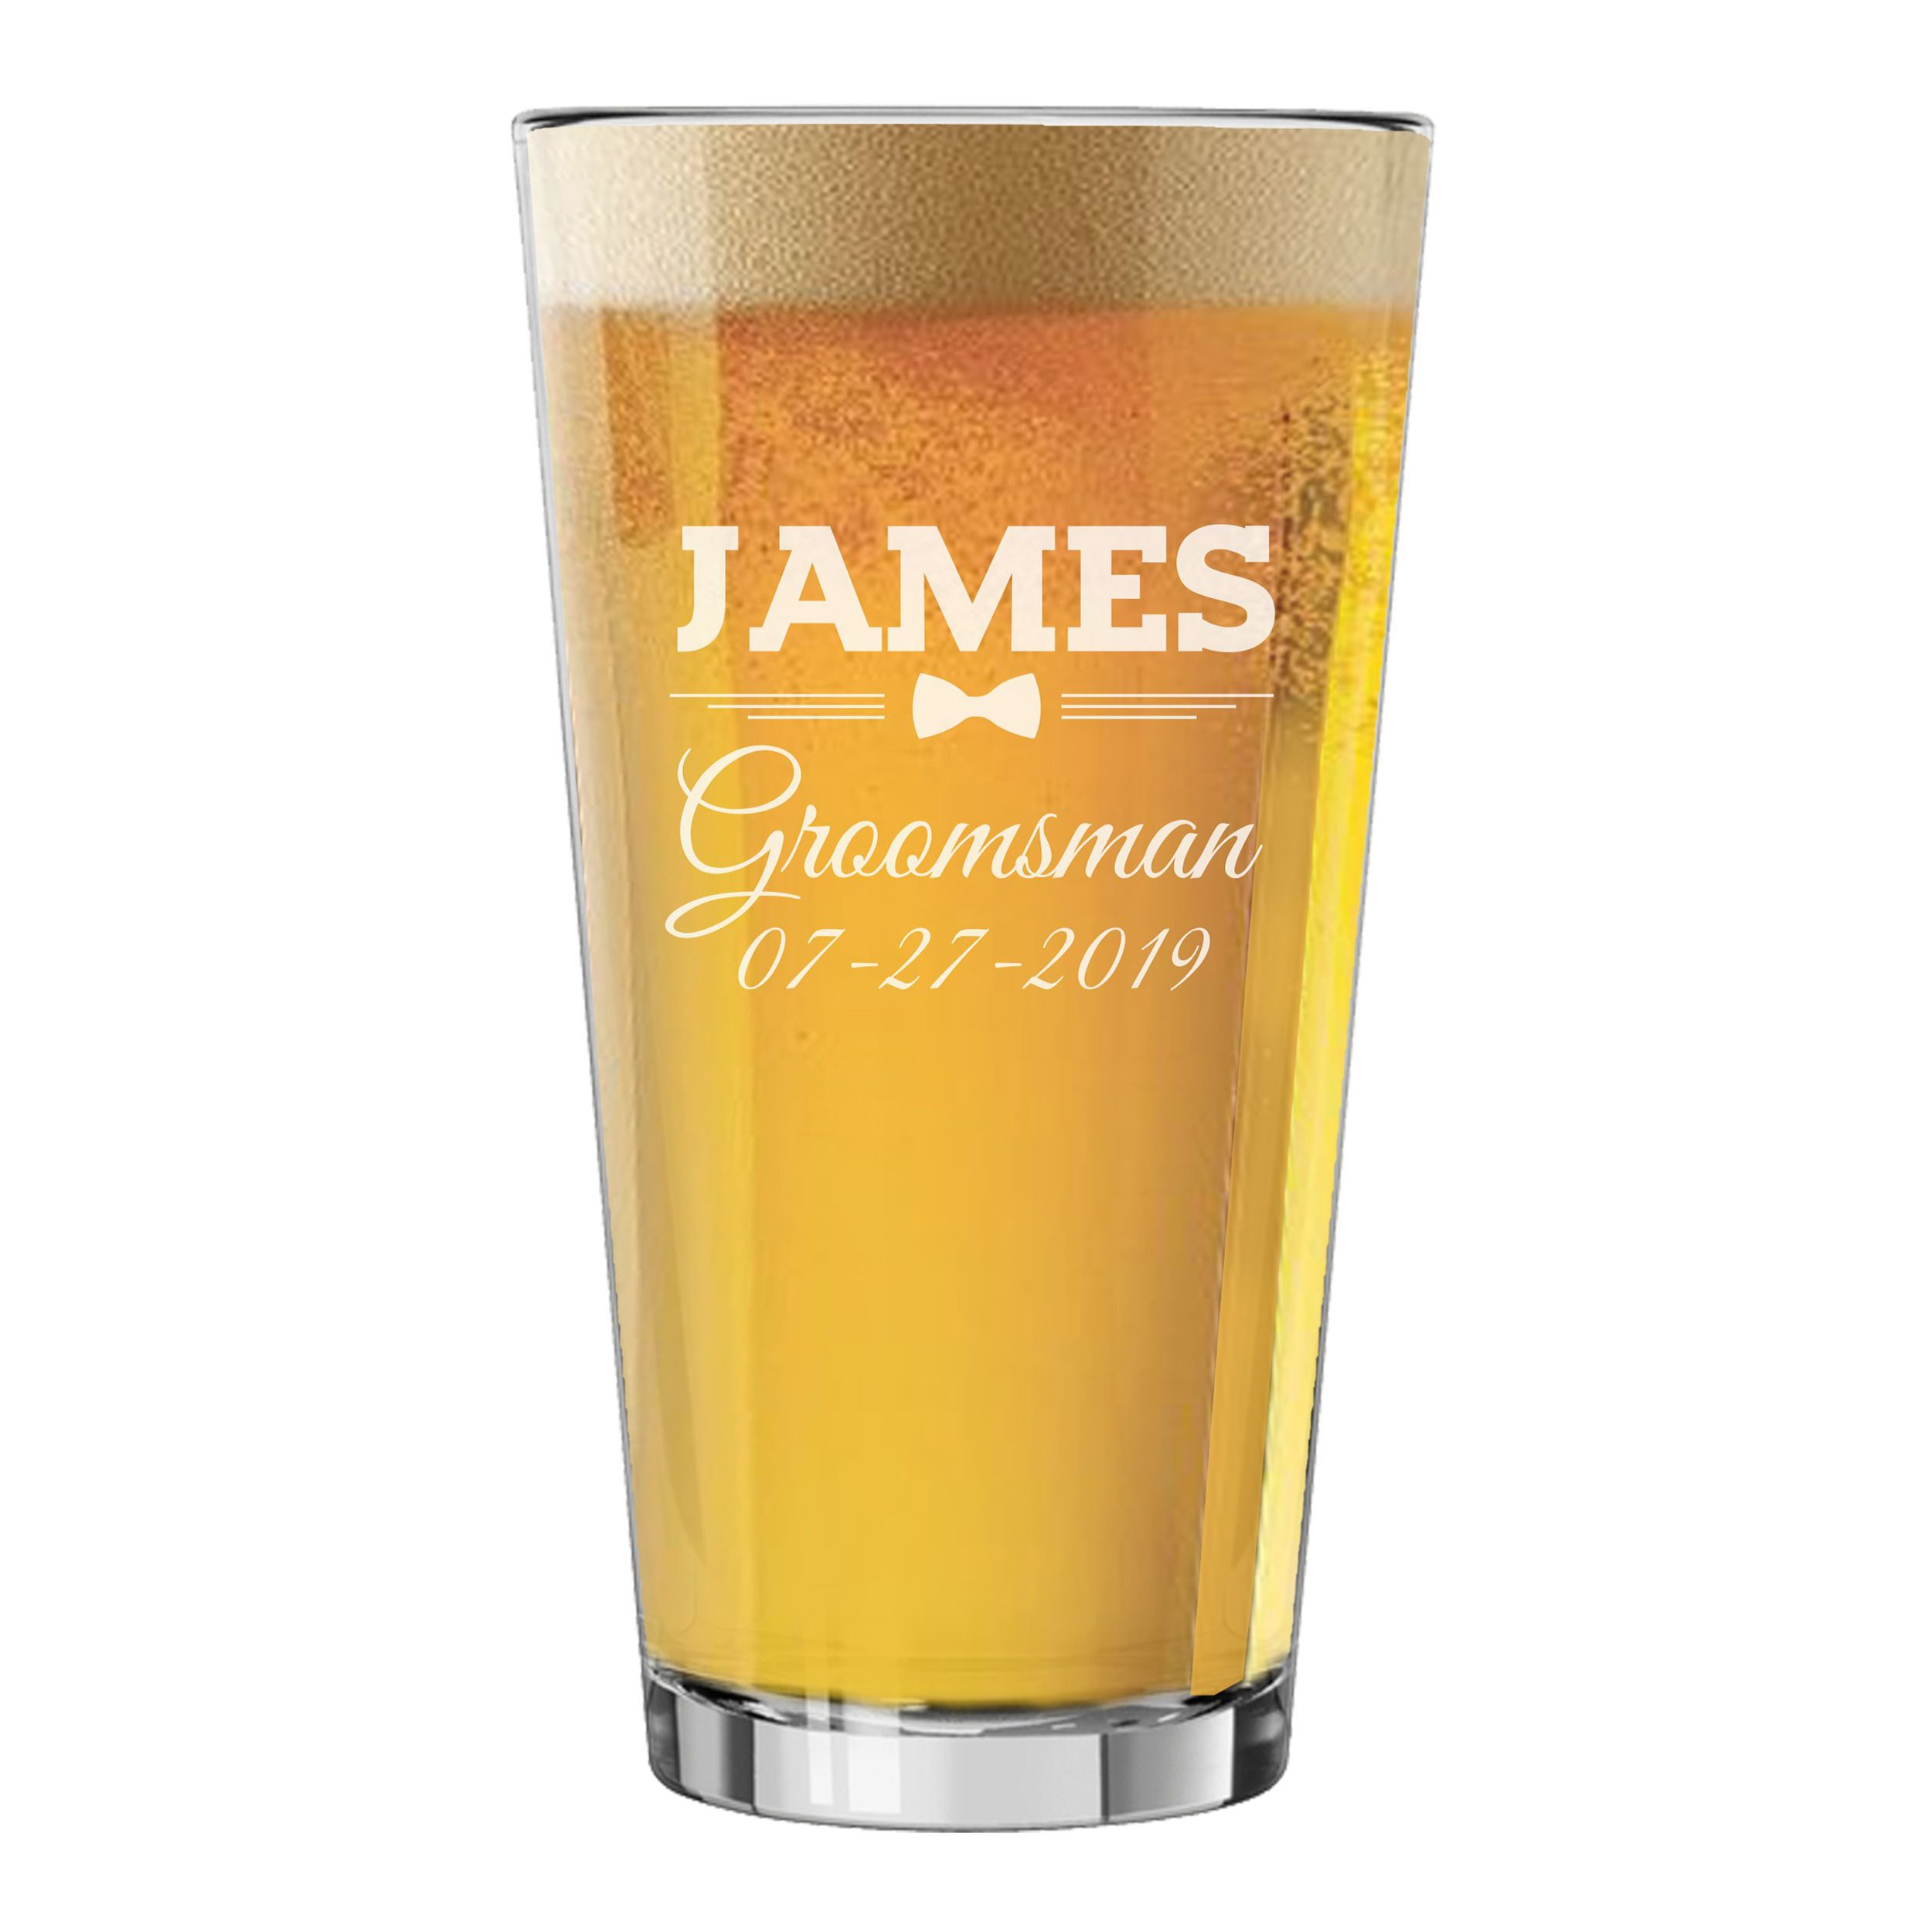 Set of 3, Set of 5, Set of 7 and more Groomsman Wedding Party 16 oz Pint Beer Glasses - Custom Engraved and Personalized for Free - Bow Tie Style (4) by The Wedding Party Store (Image #2)